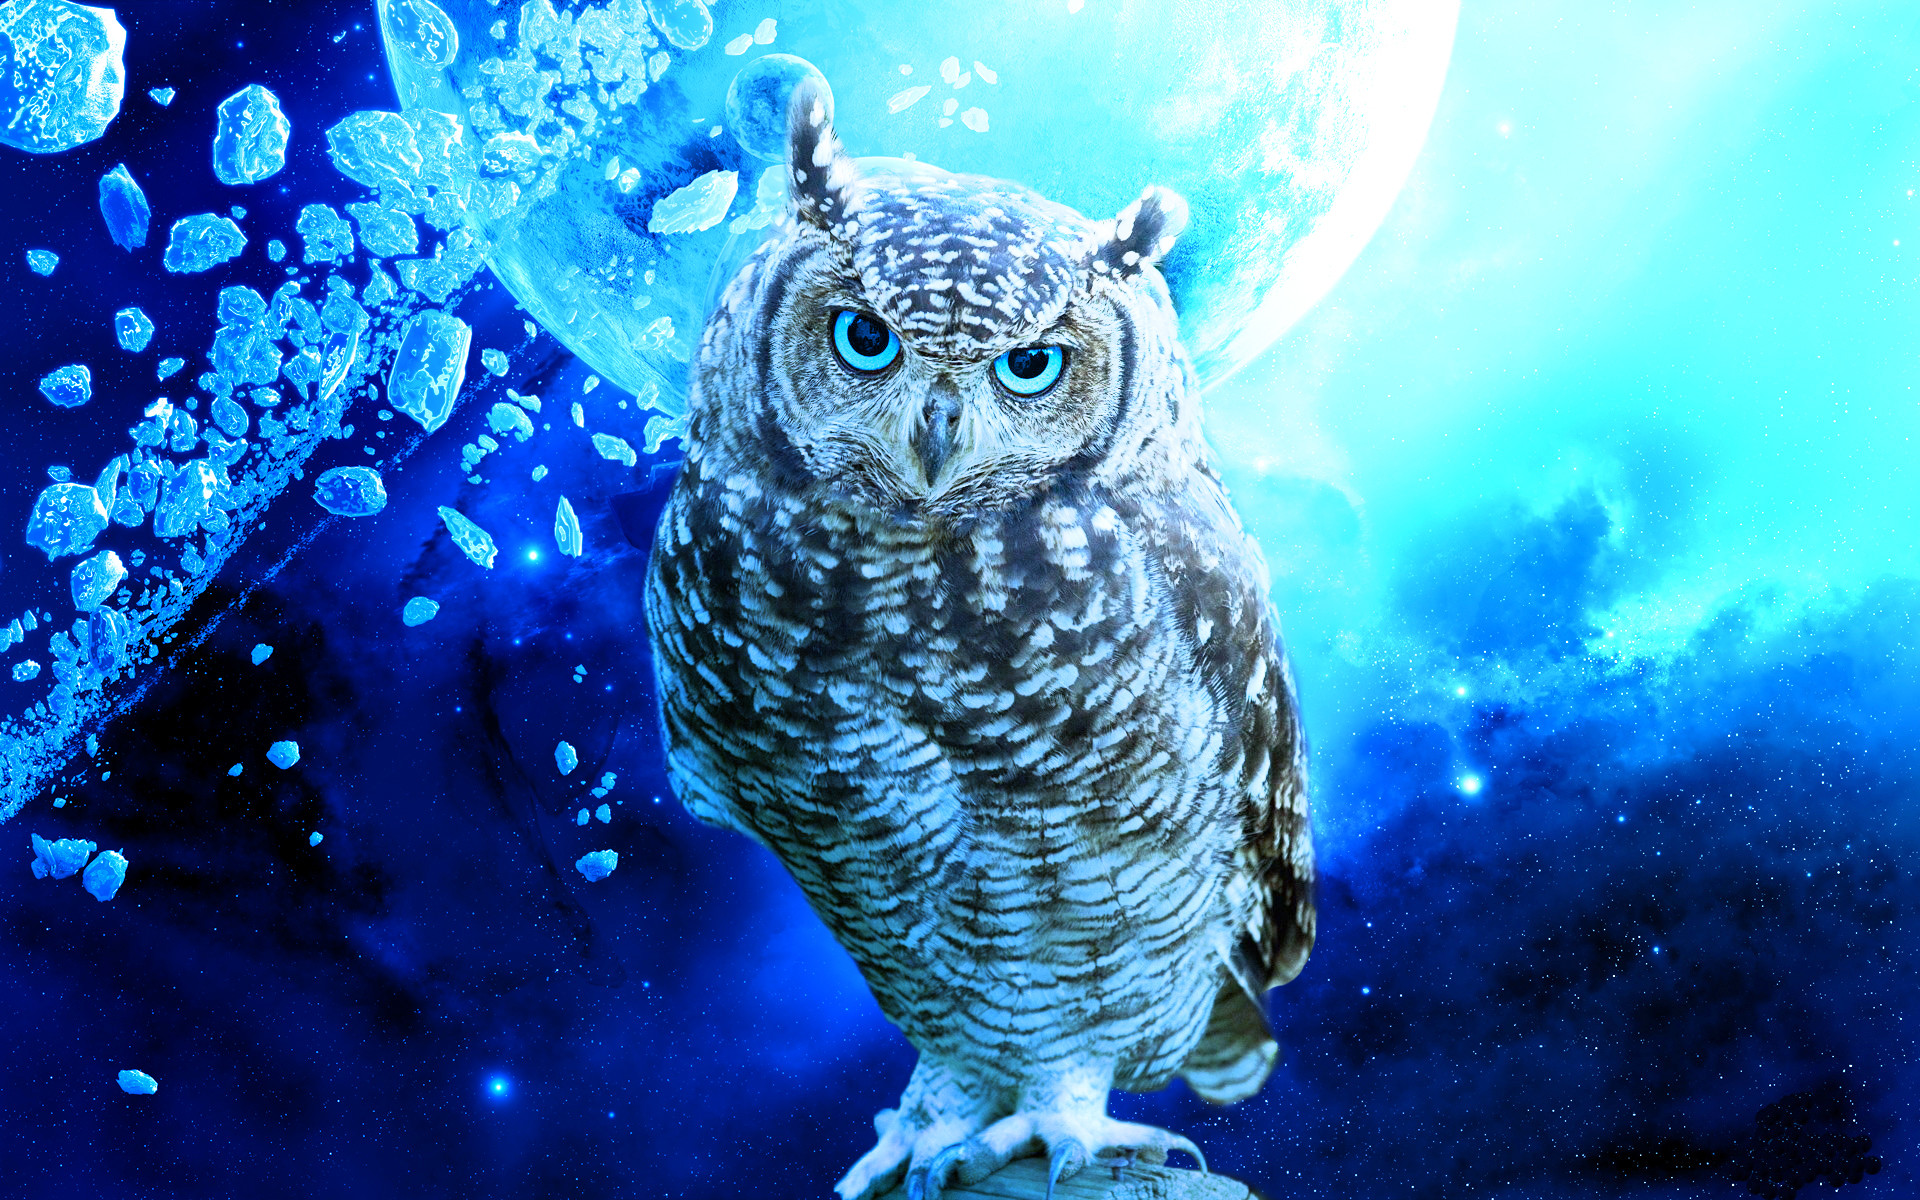 1920x1200 wallpaper.wiki-Free-Download-Cute-Owl-Picture-PIC-